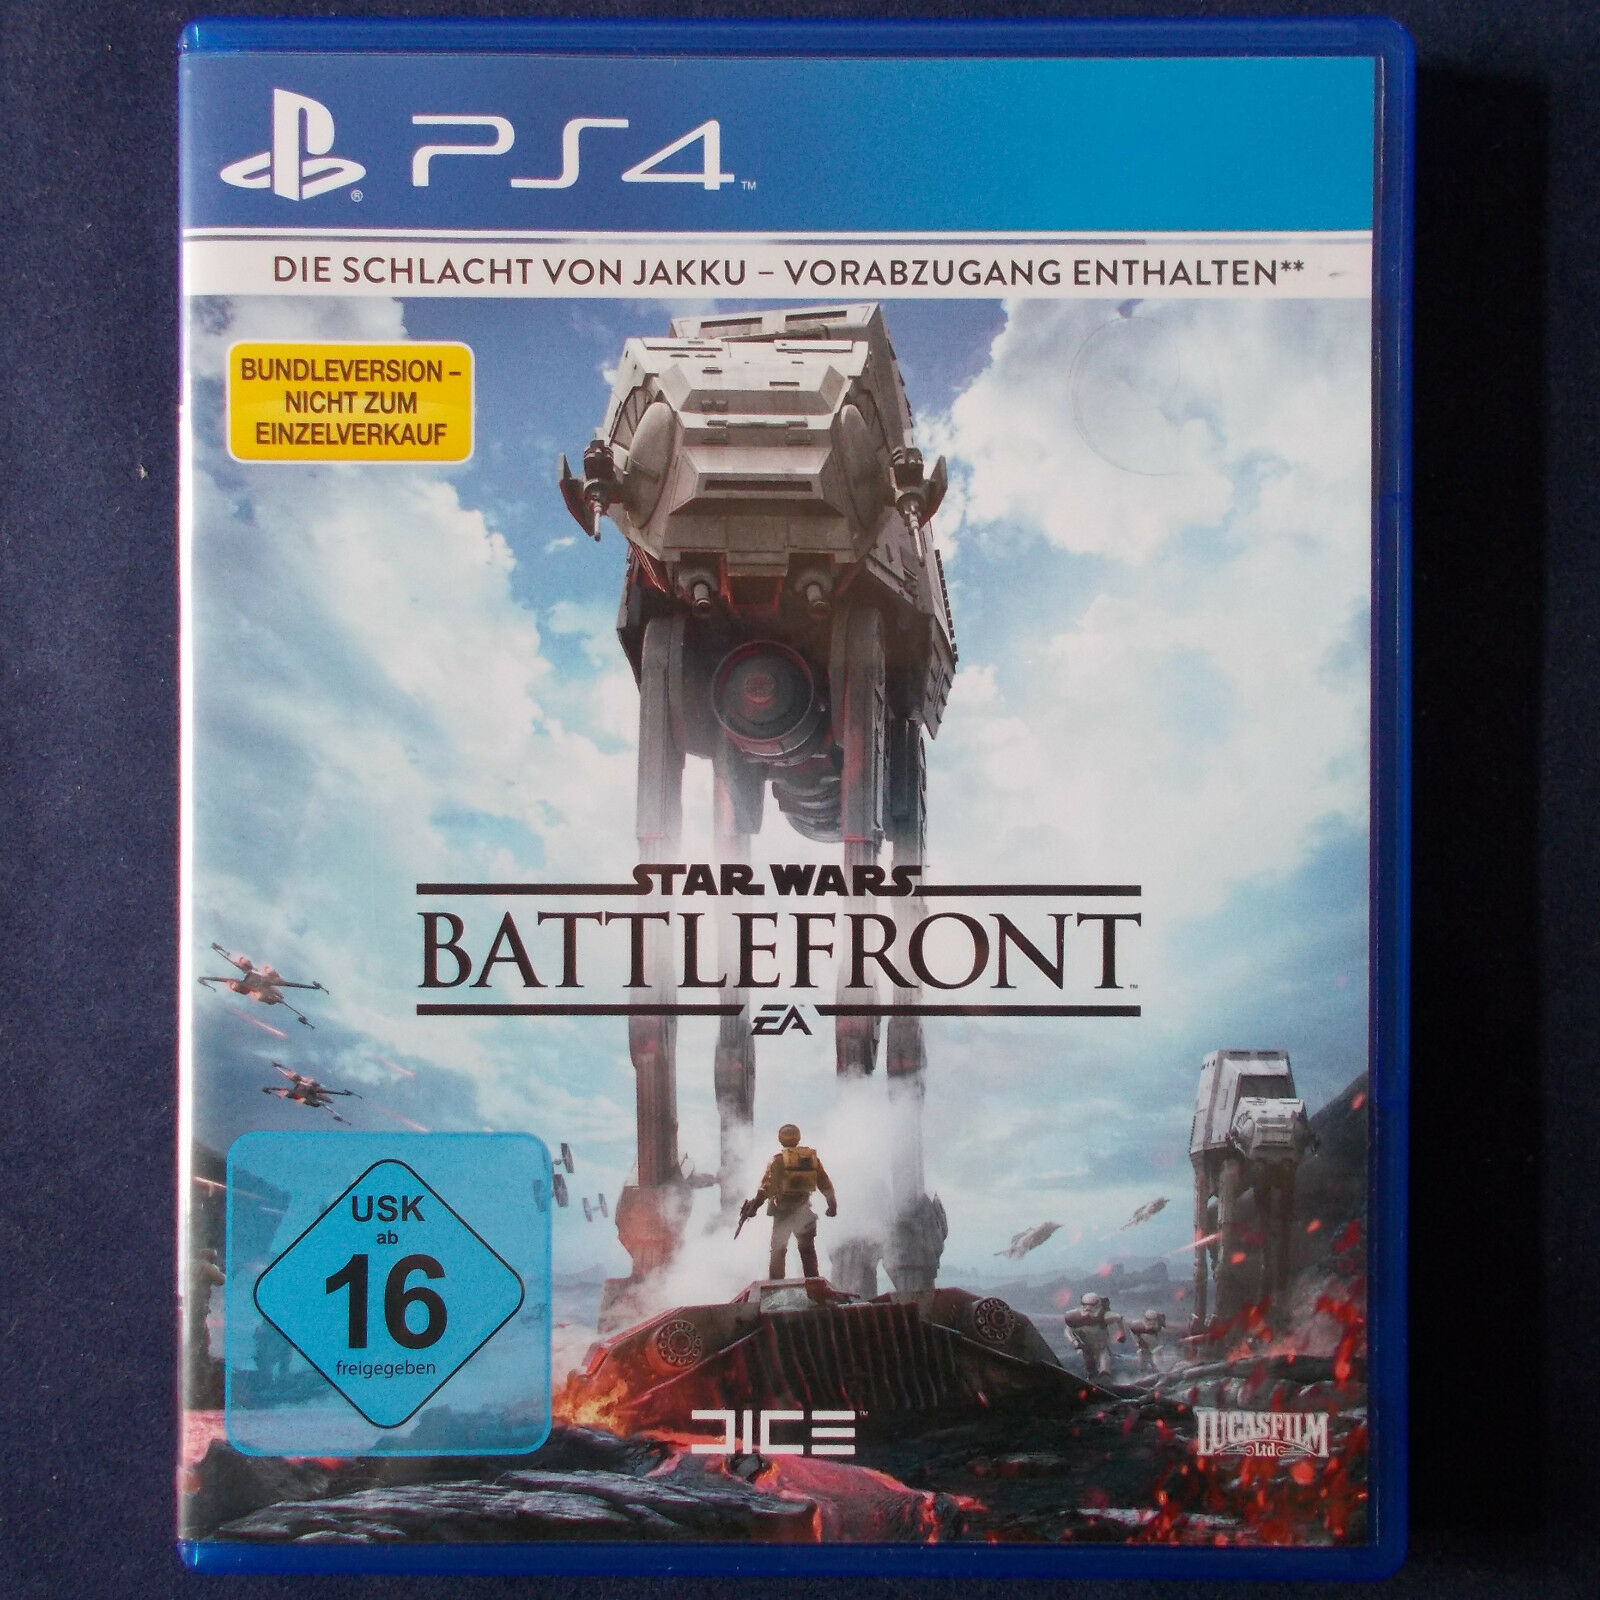 PS4 - Playstation ► Star Wars: Battlefront ◄ - Bonne affaire StarWars